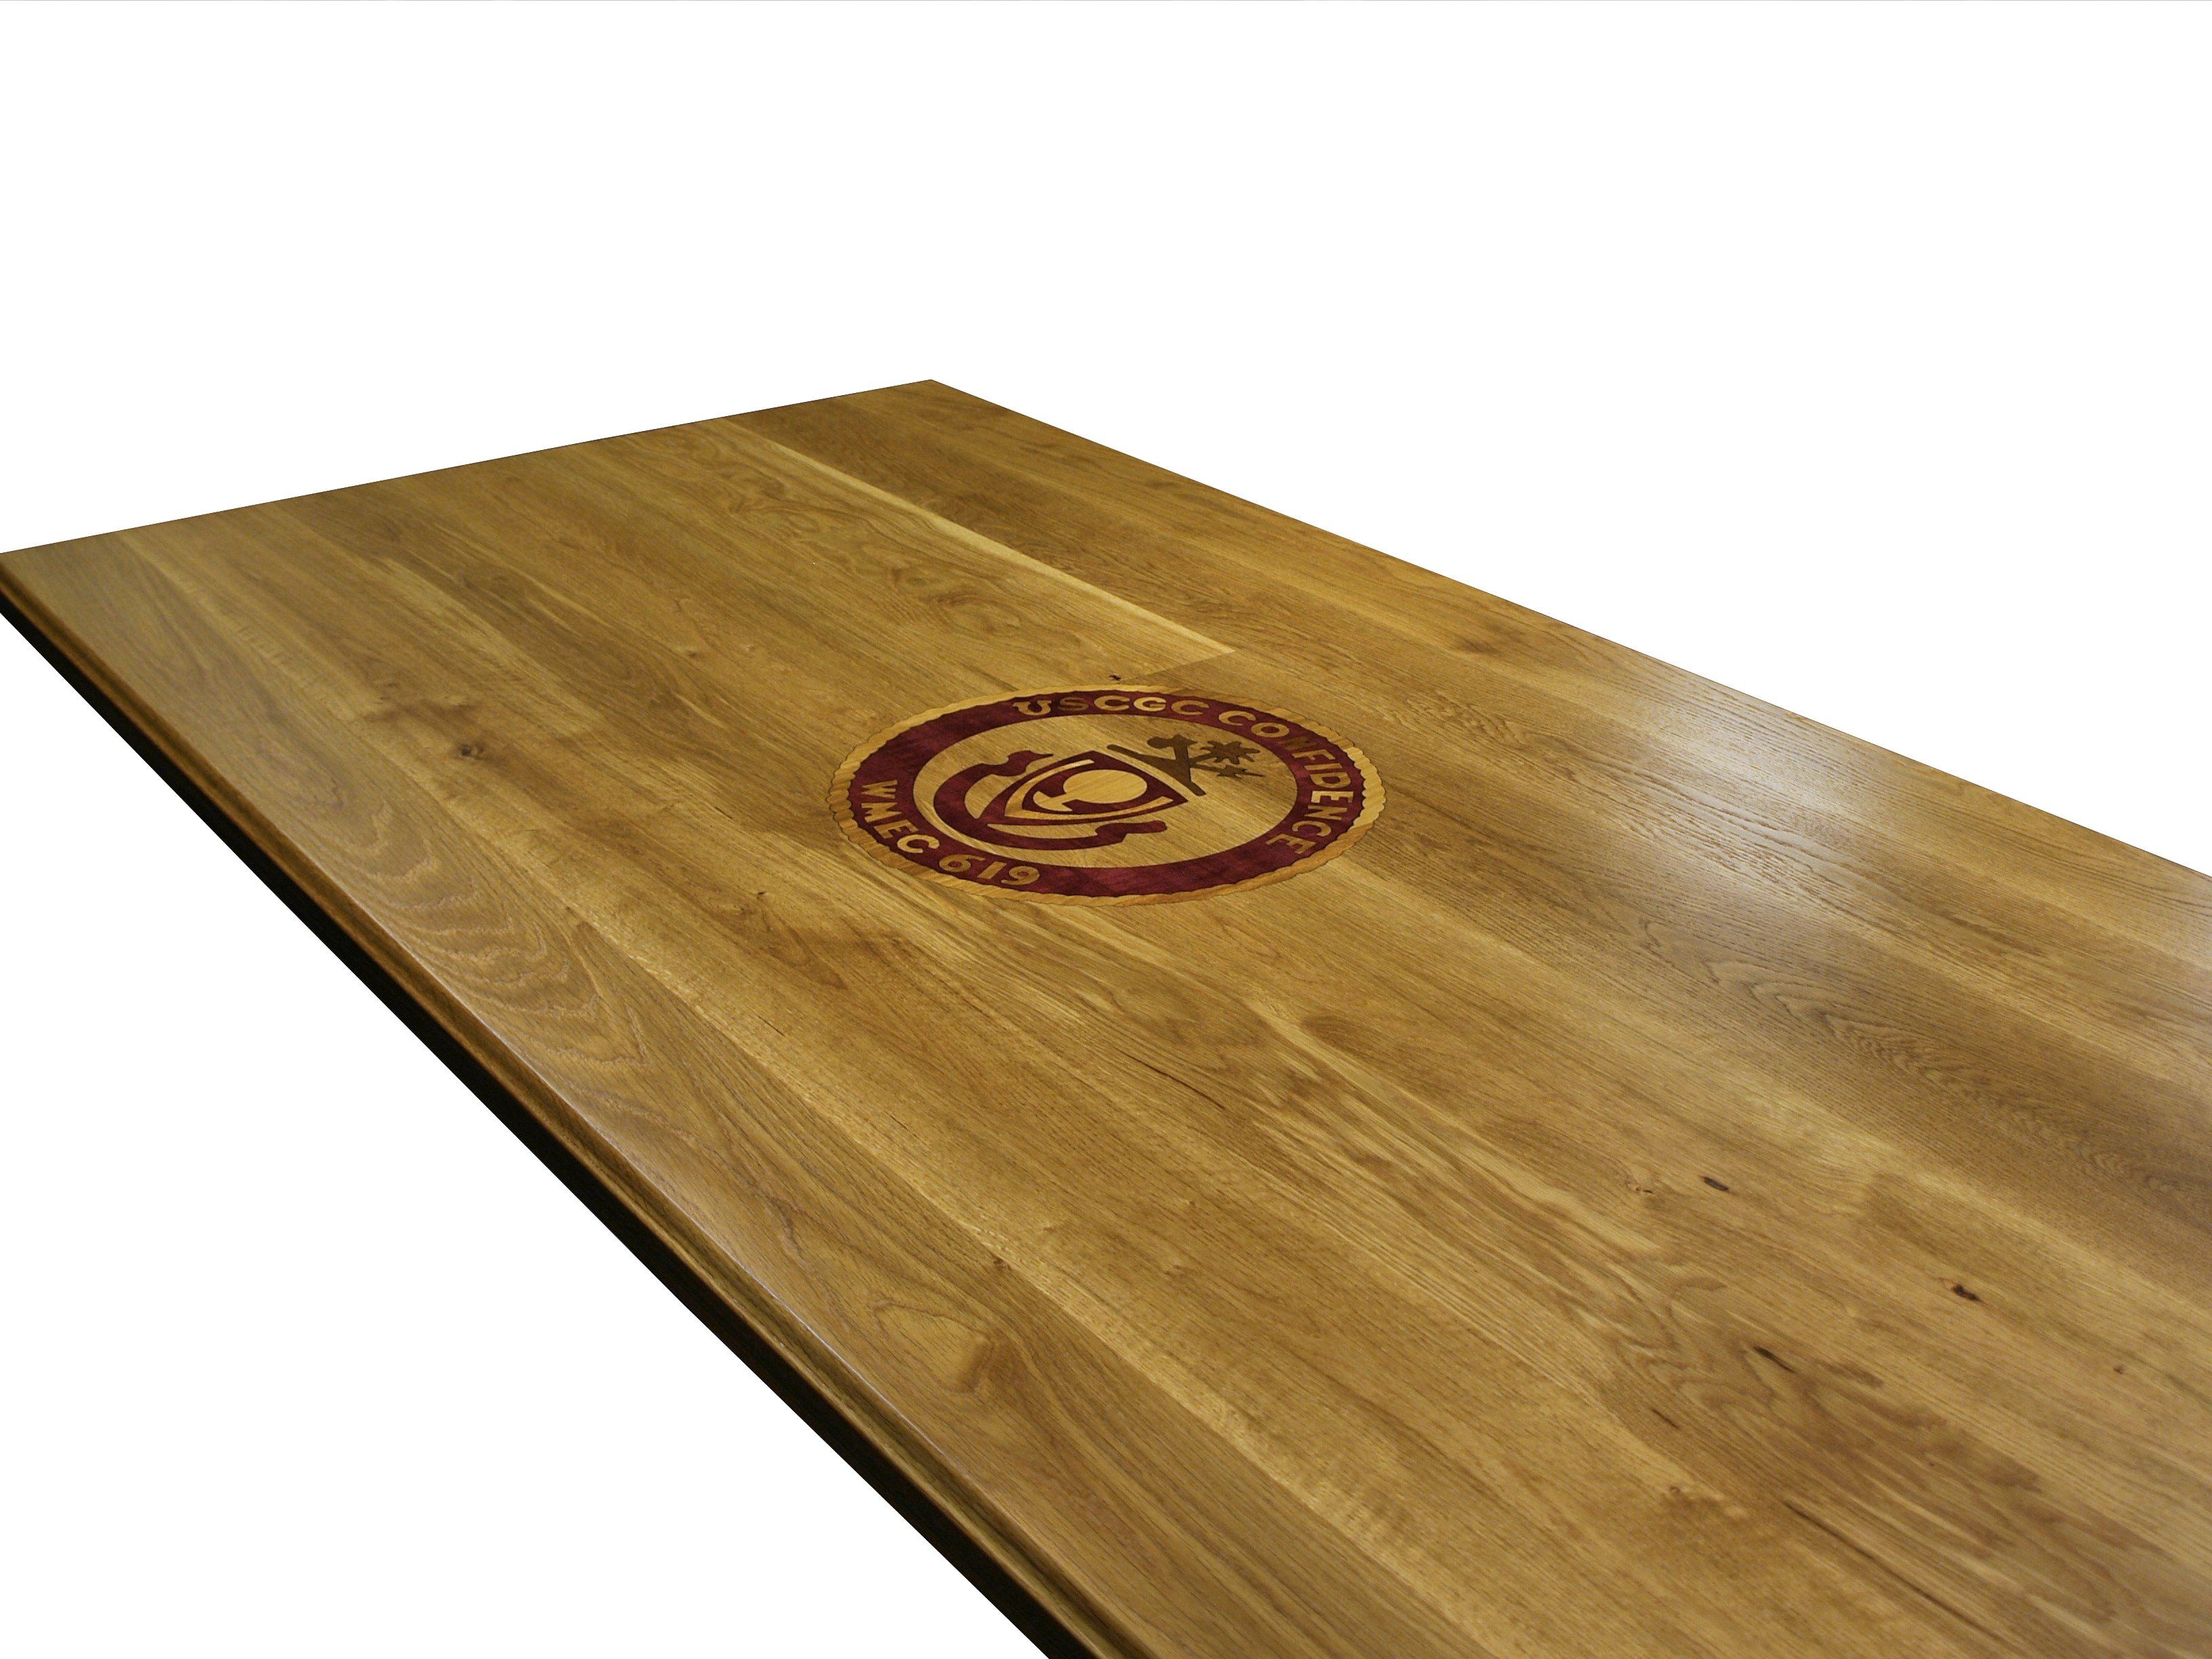 Custom Purpleheart  Walnut and White Oak inlay set into a Face Grain White Oak  table. Custom Wood Countertop Options   Inlays and Fills